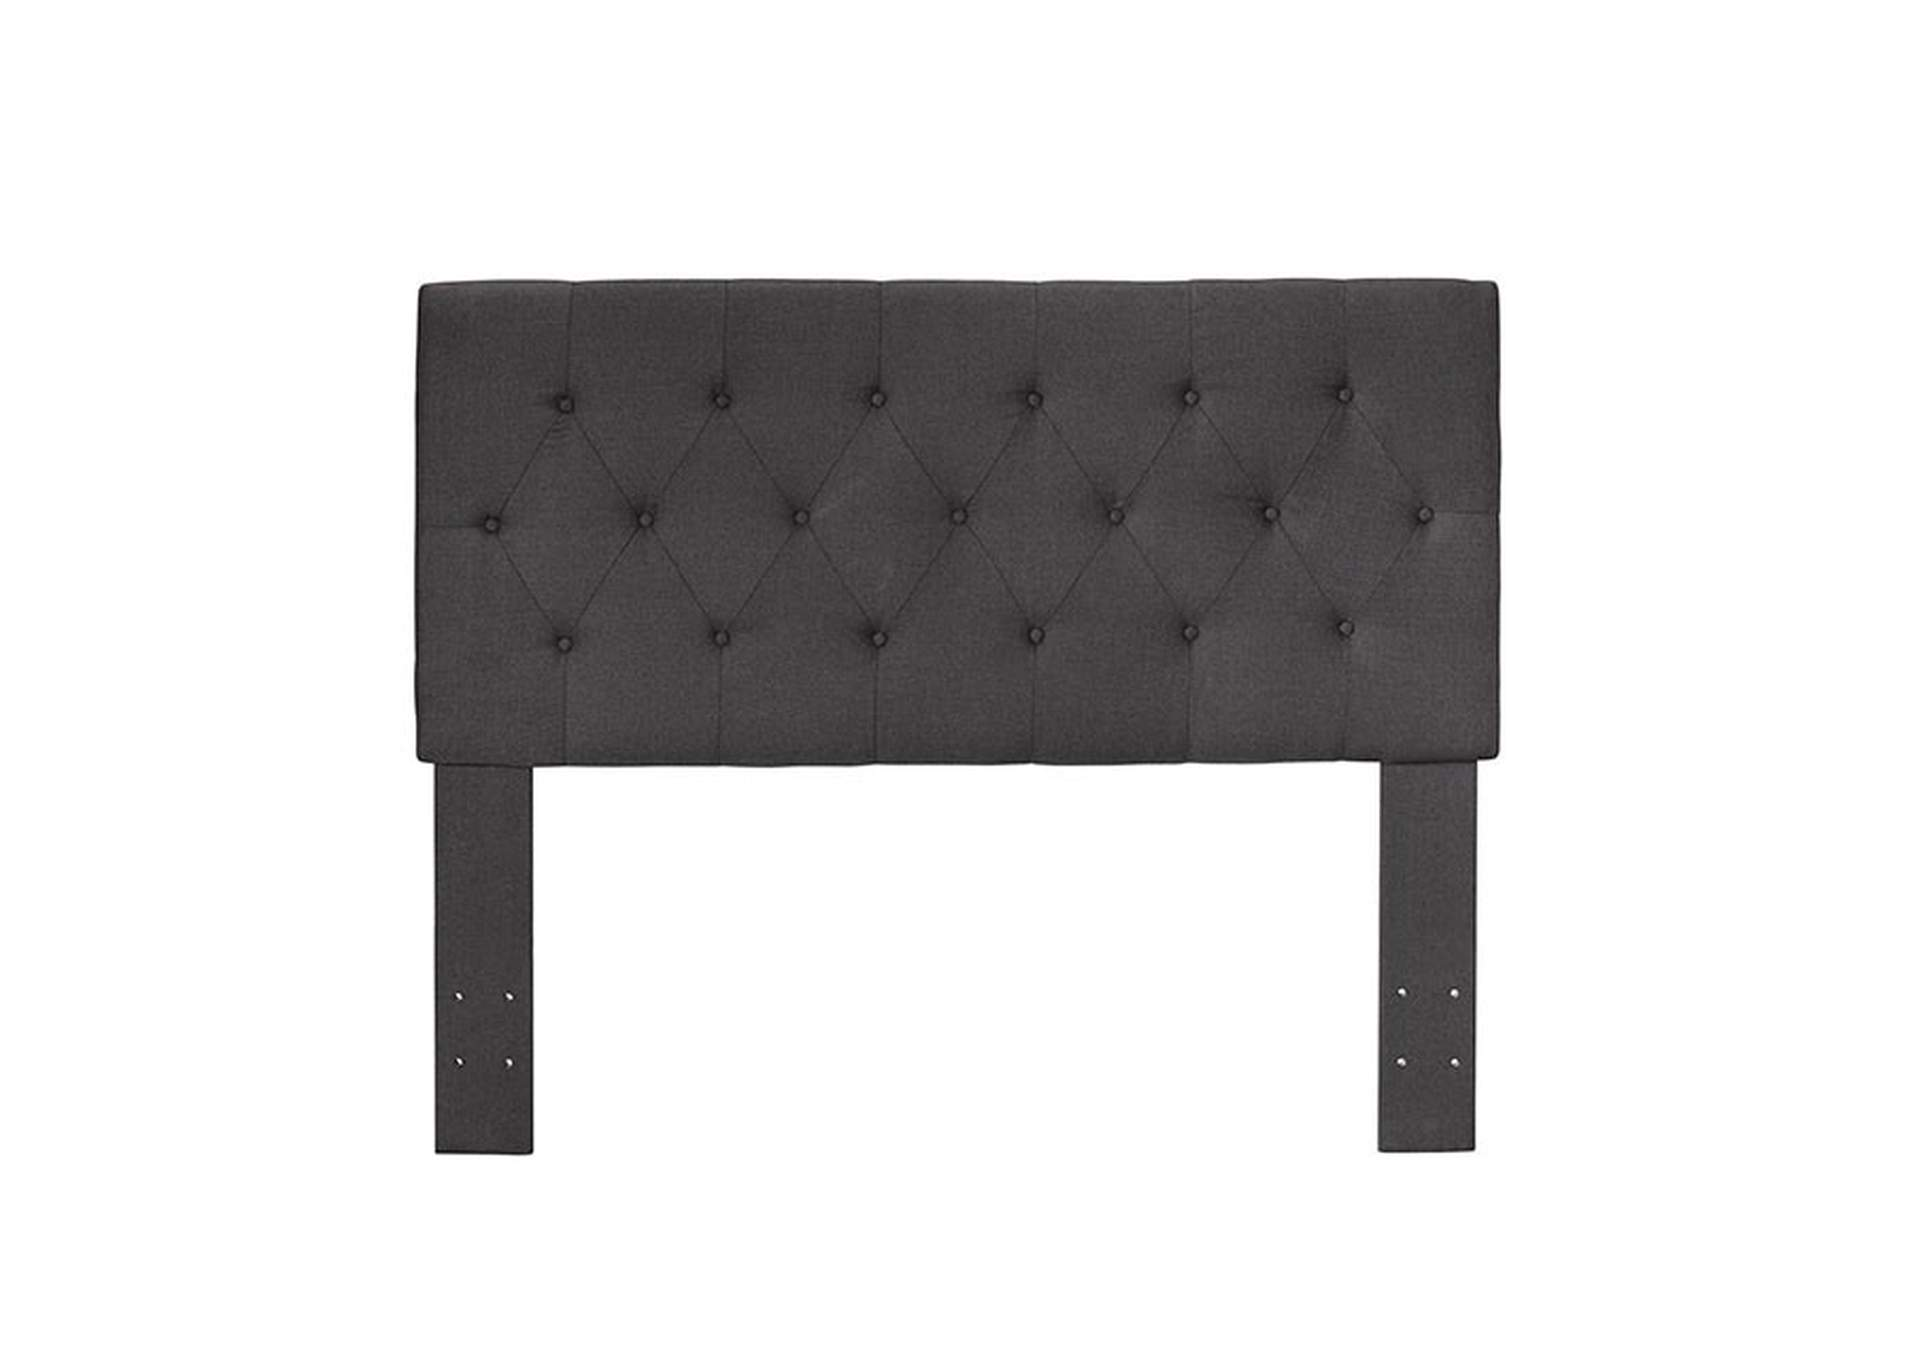 Leeroy ll Dark Grey Queen Headboard,Furniture of America